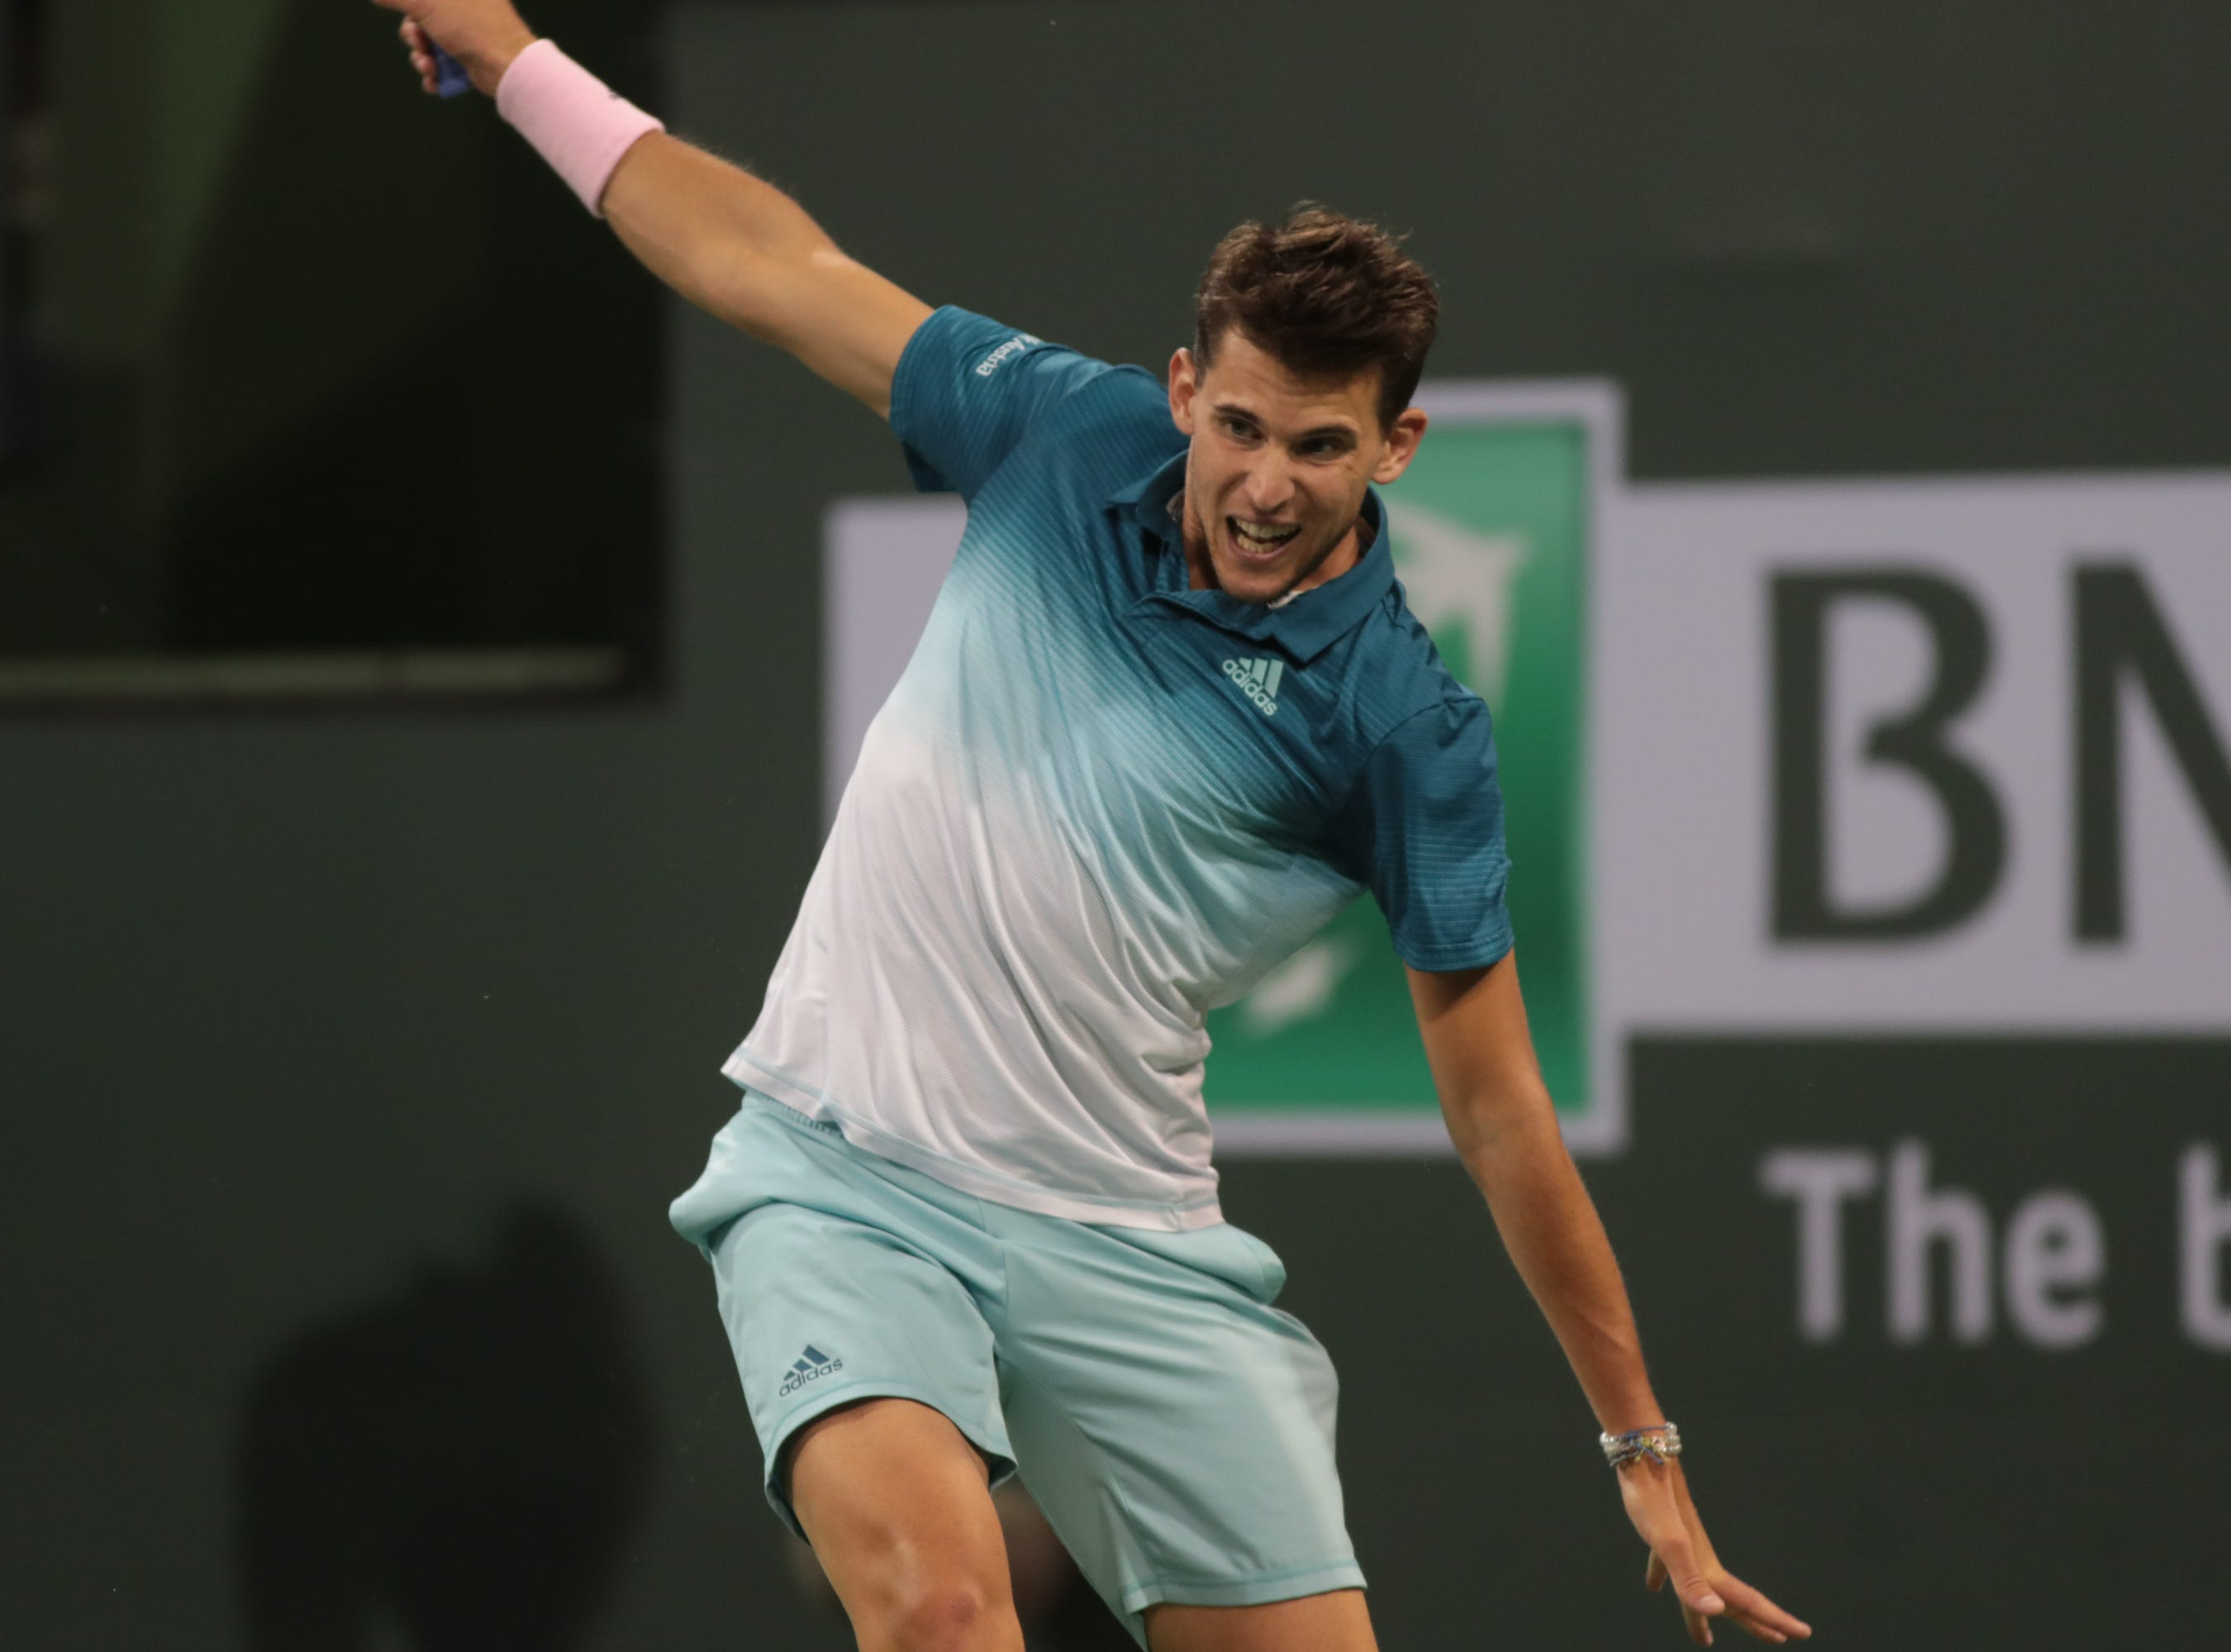 Dominic Thiem hits a backhand to Ivo Karlovic at the BNP Paribas Open in Indian Wells, Calif., March 13, 2019.